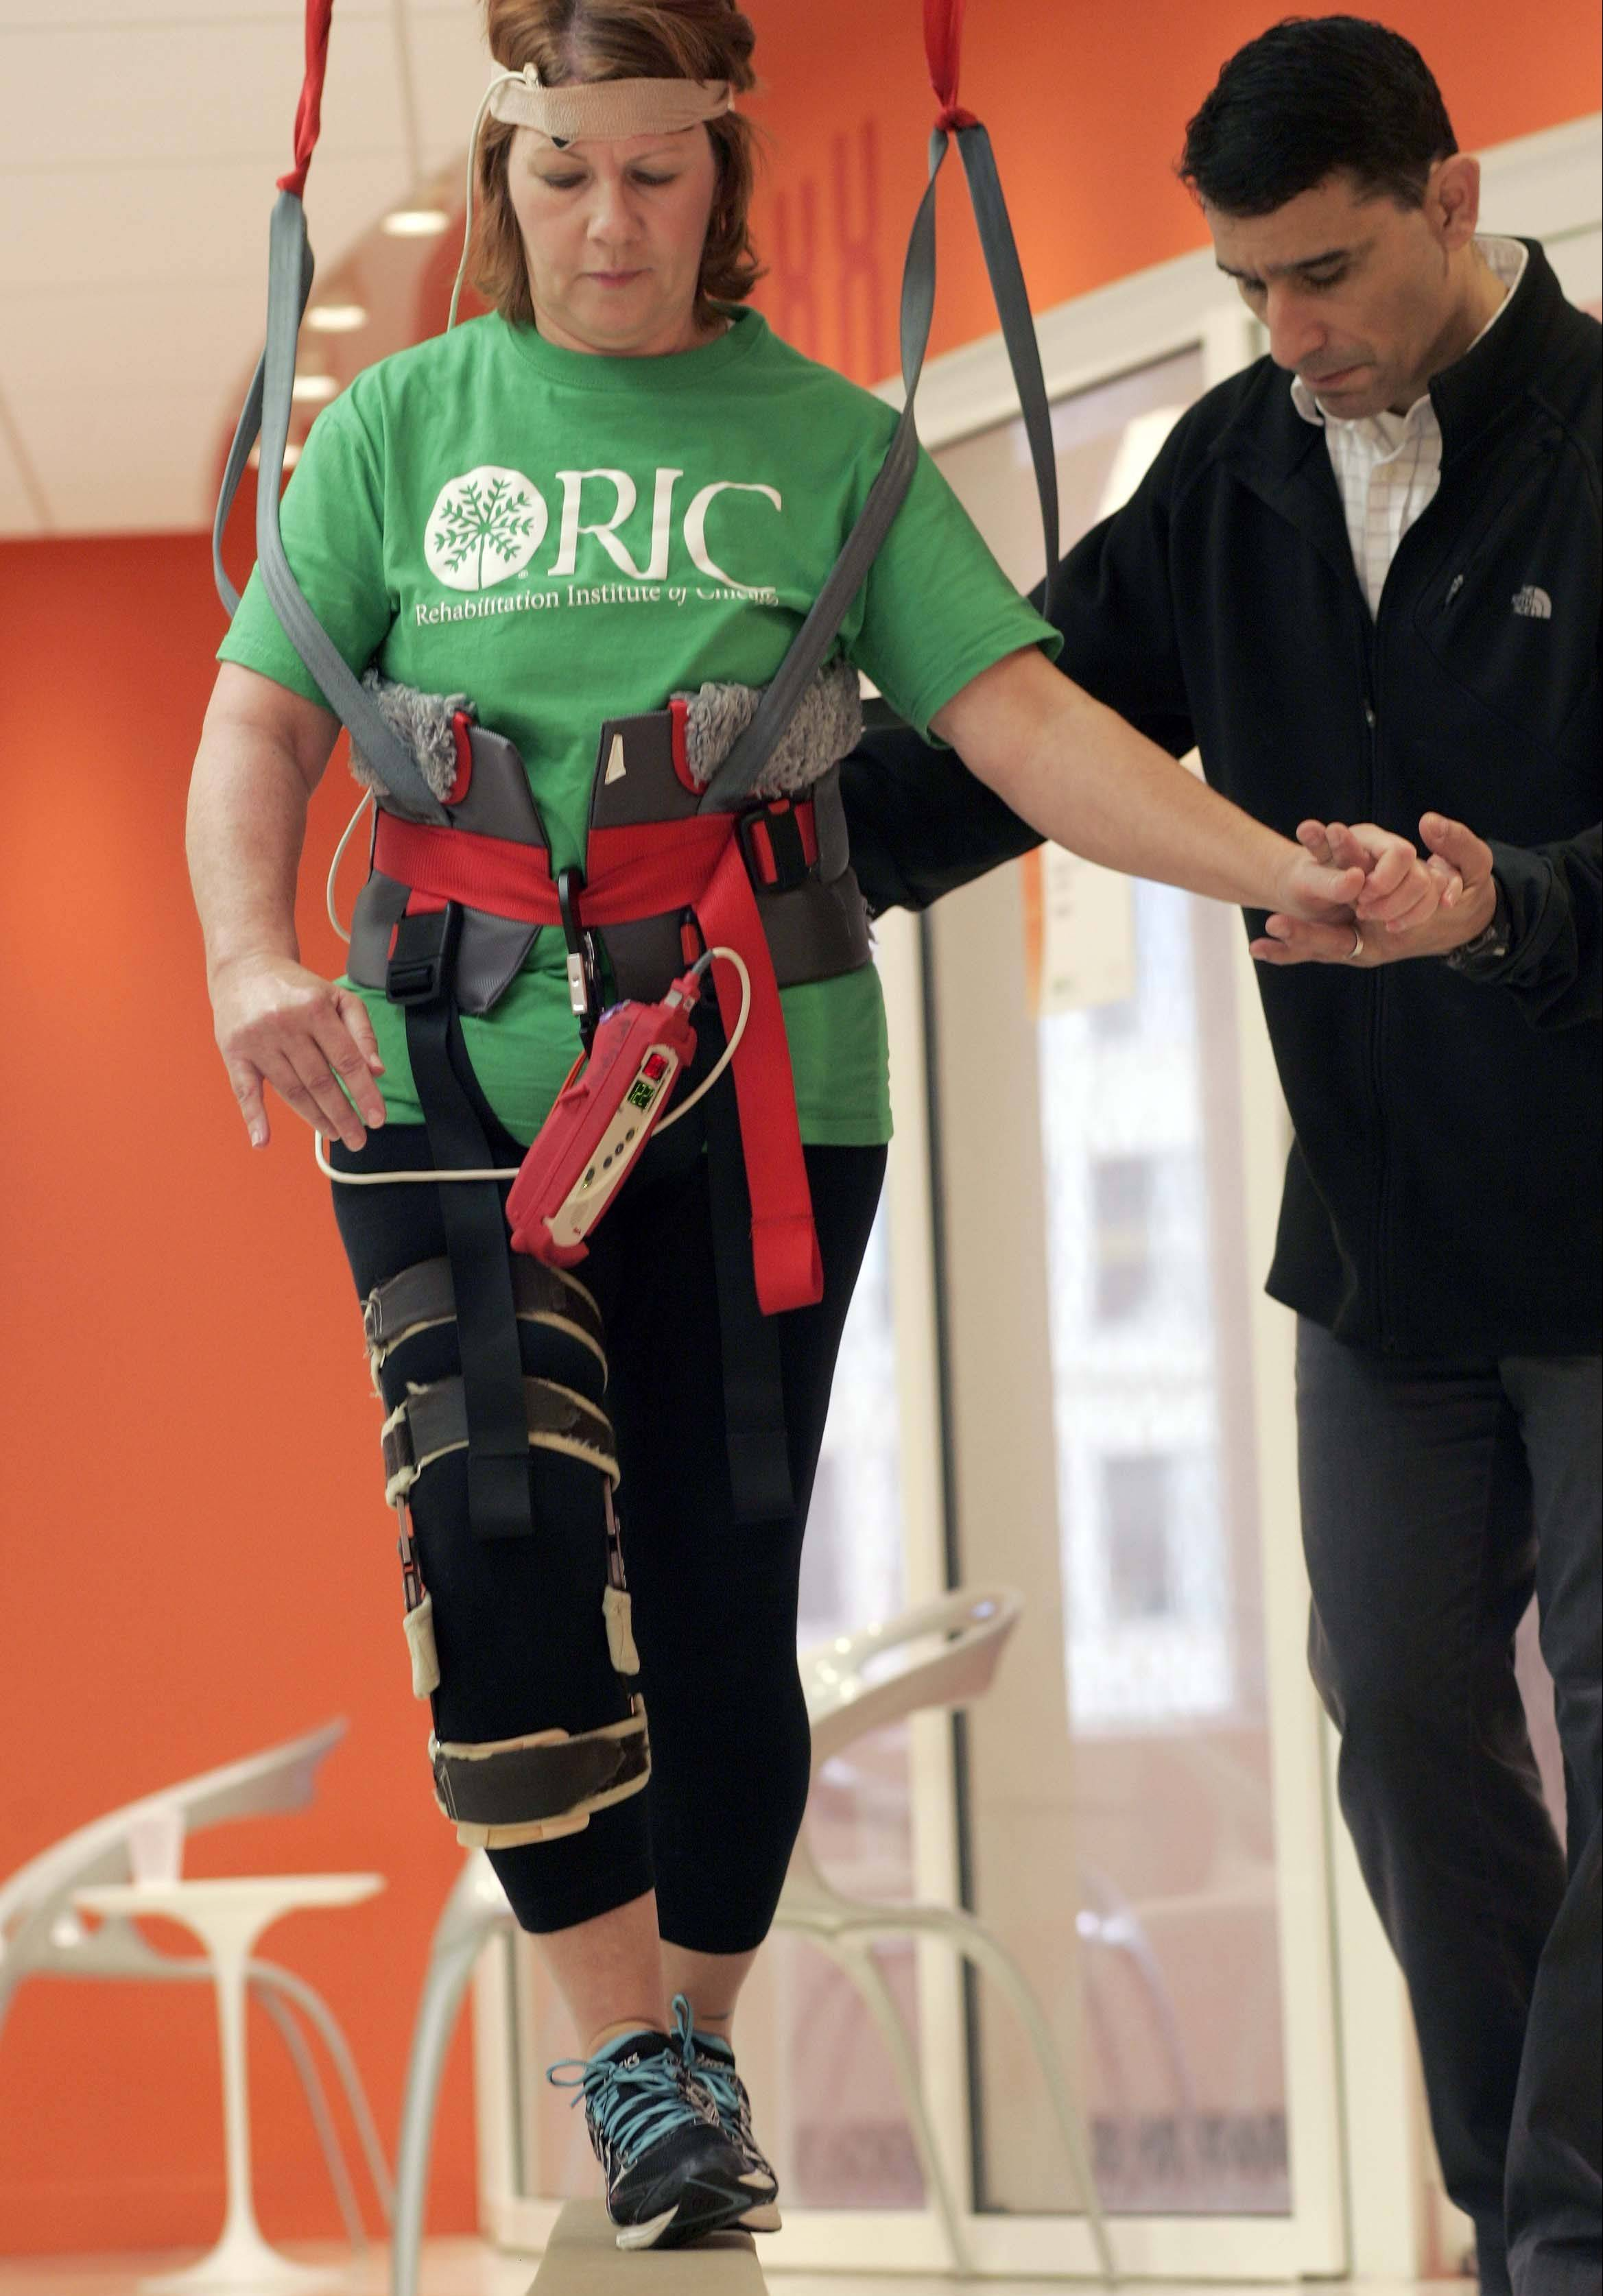 Kathy Pacholski of Chicago traverses a balance beam with Research Scientist and Physical Therapist T. George Hornby close by her side at the Rehabilitation Institute of Chicago. U.S. Sen. Mark Kirk and Pacholski, who both participated in an experimental walking trial at the Institute, credit the therapy sessions with helping their recovery.